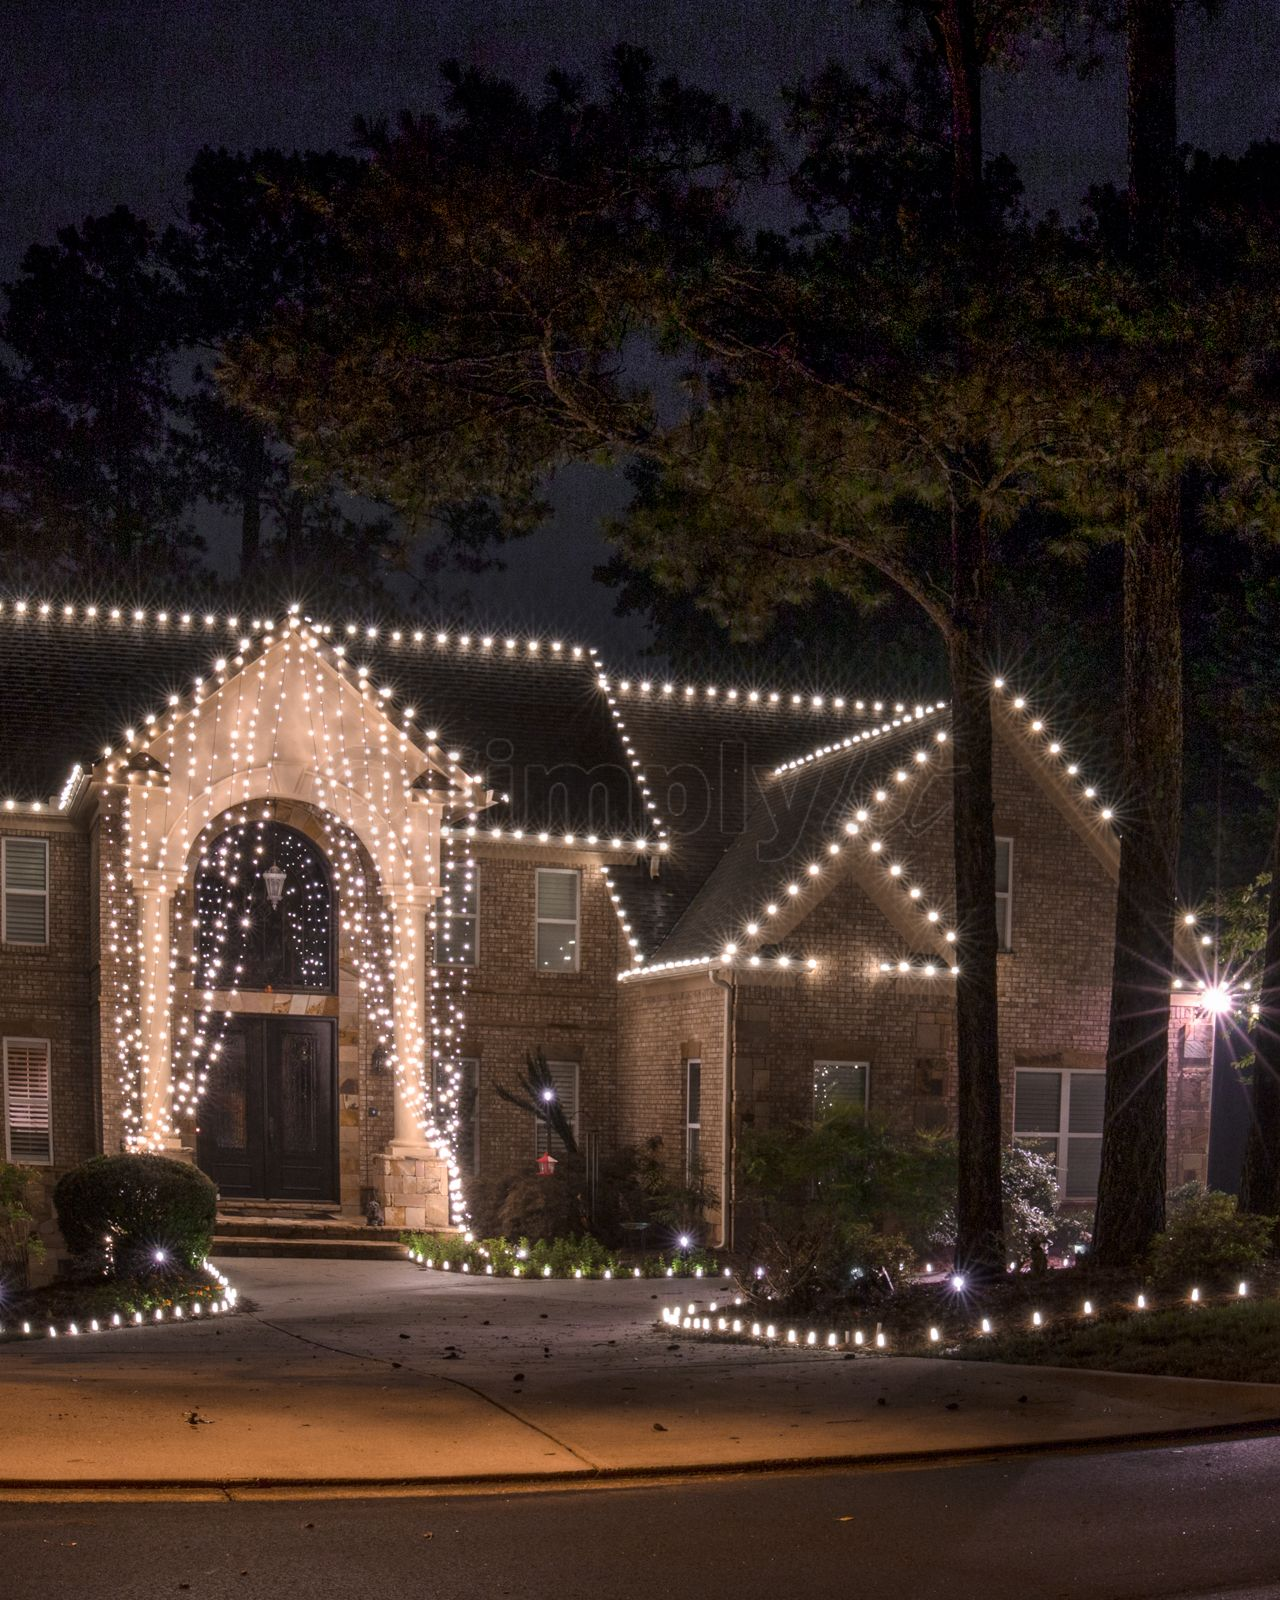 Another View Of The Light Curtain But Showing The Rooftop And Driveway Lit With C9 With Images Christmas Lighting Outdoor House Outdoor Christmas Lights Christmas Lights